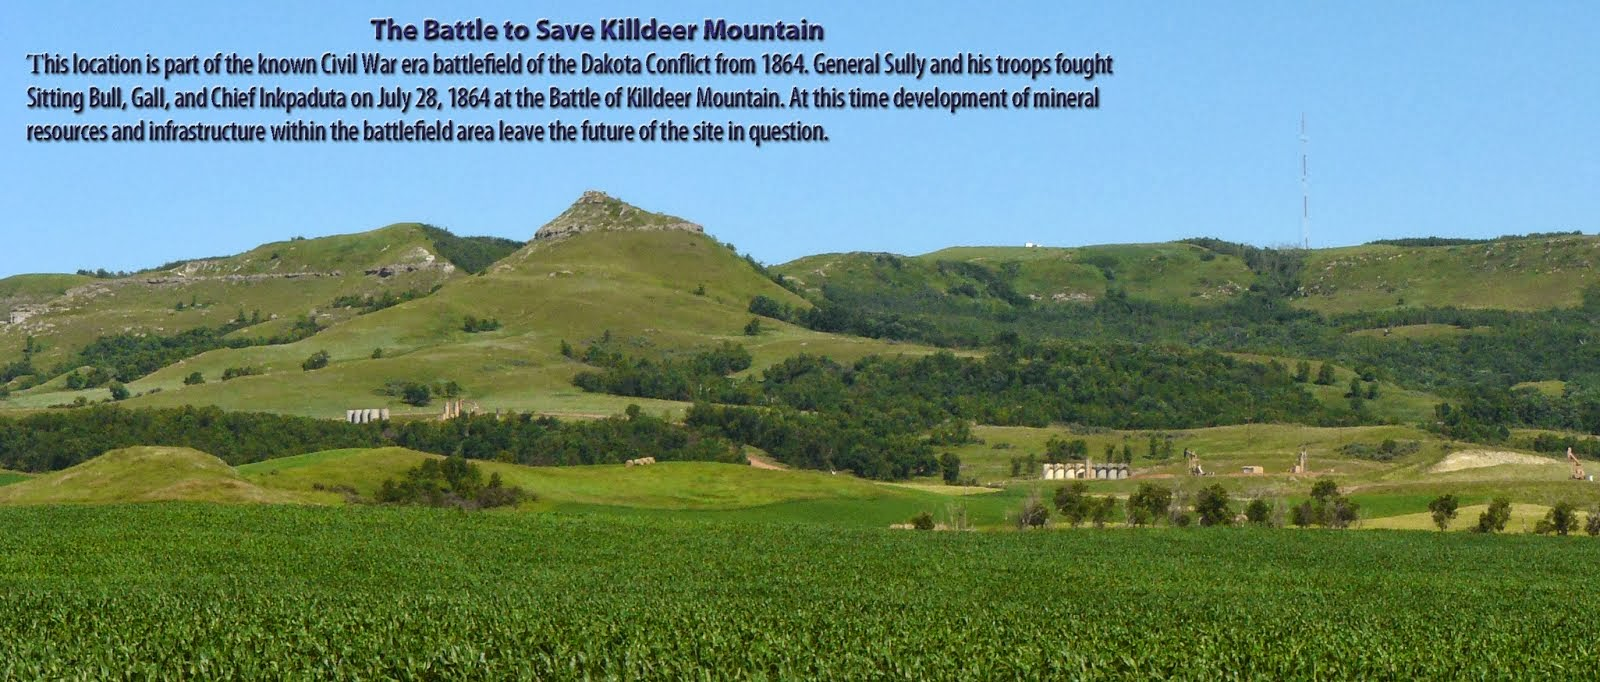 The Battle to Save Killdeer Mountain